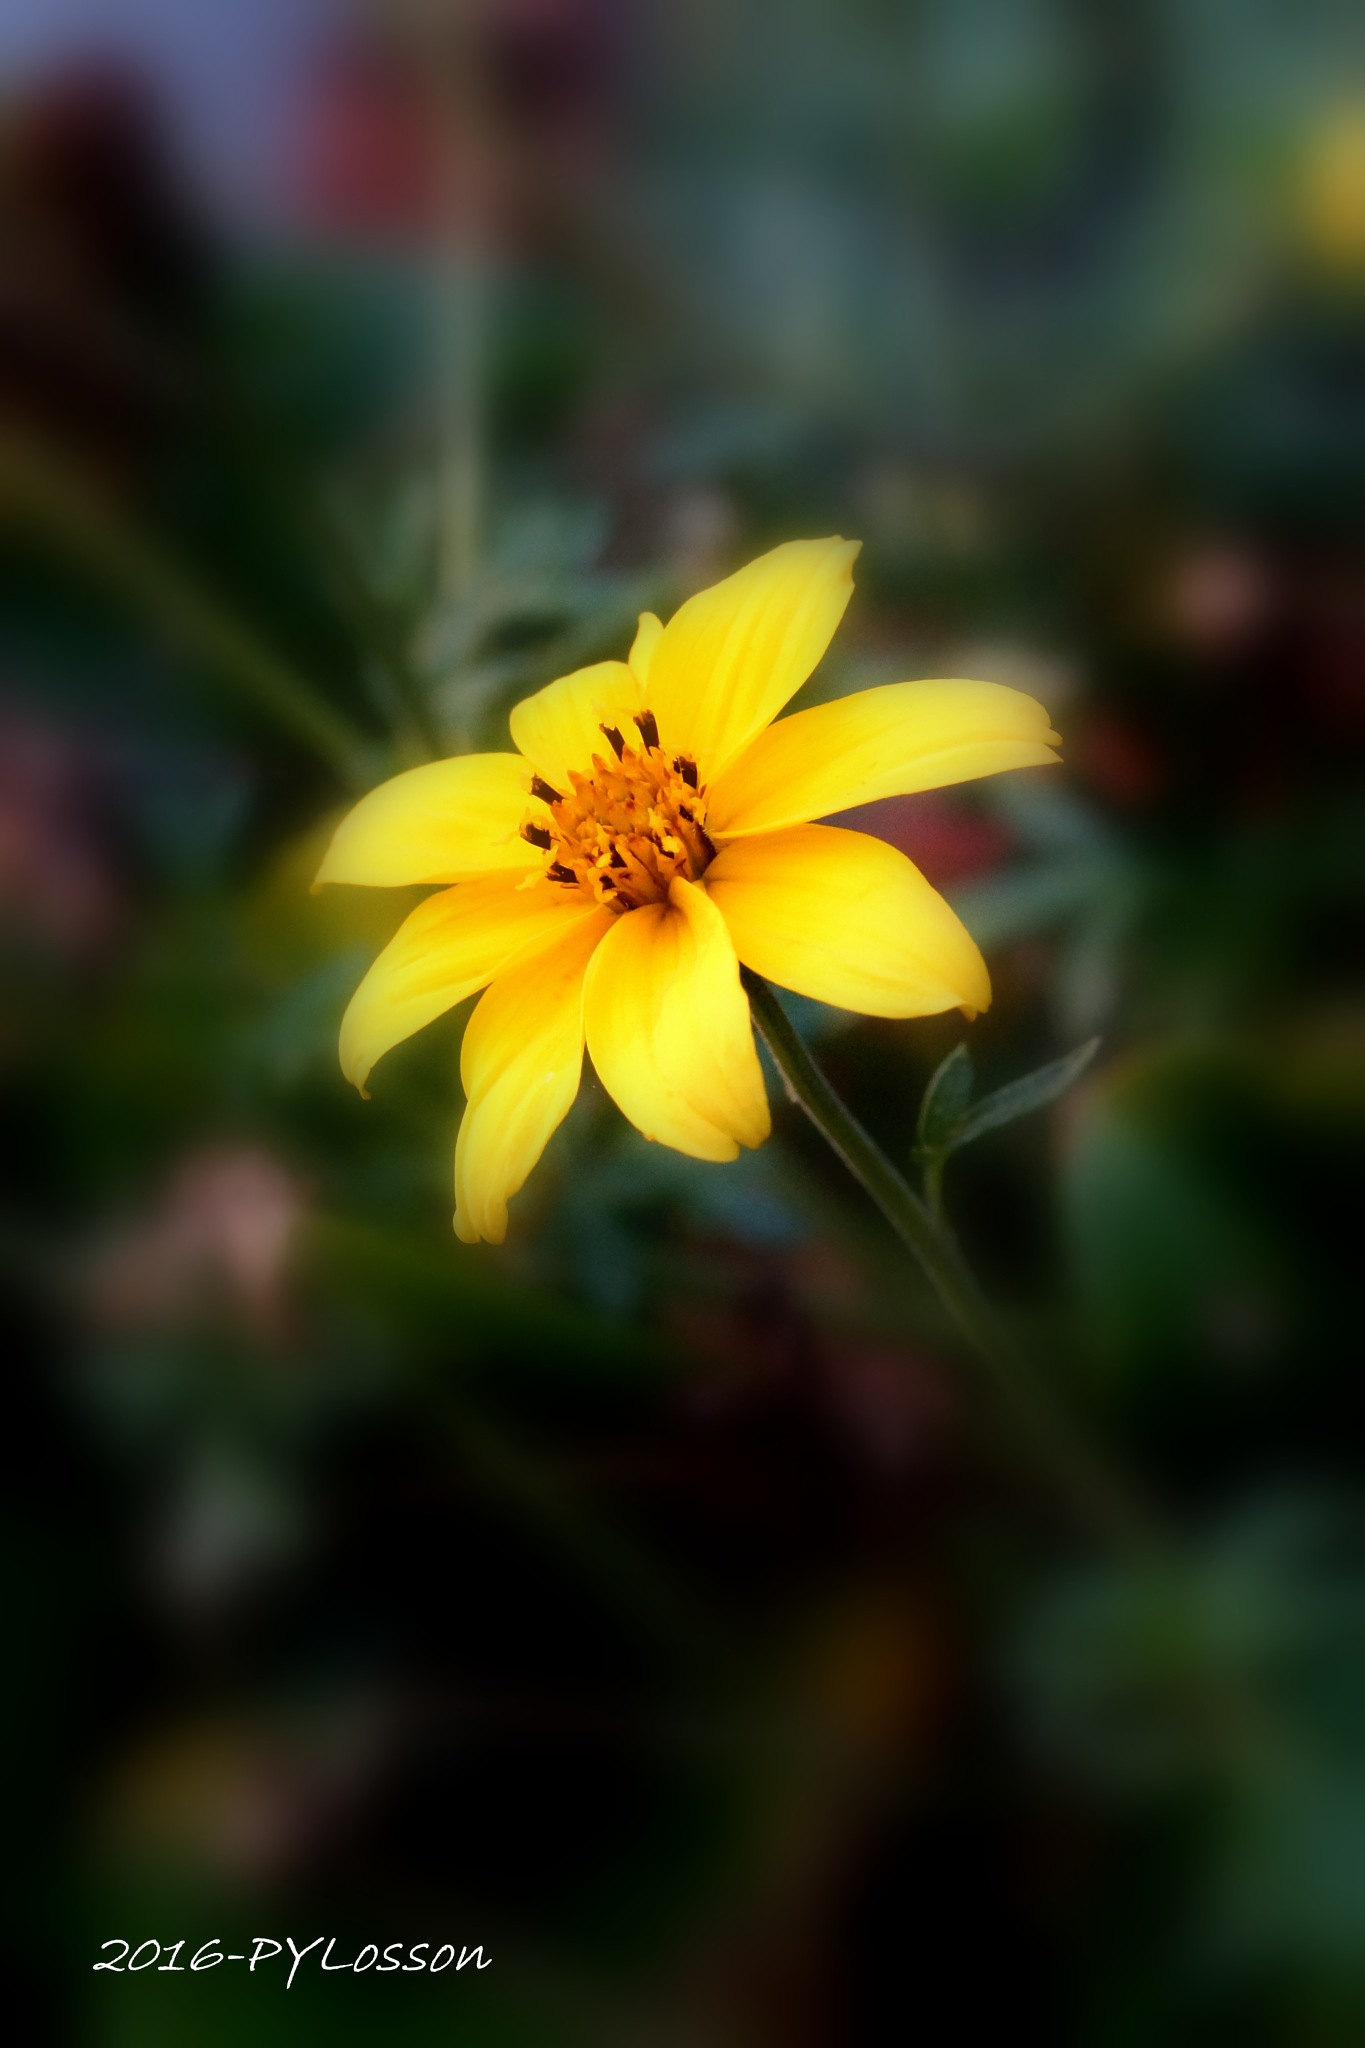 flower by Pierre-Yves Losson